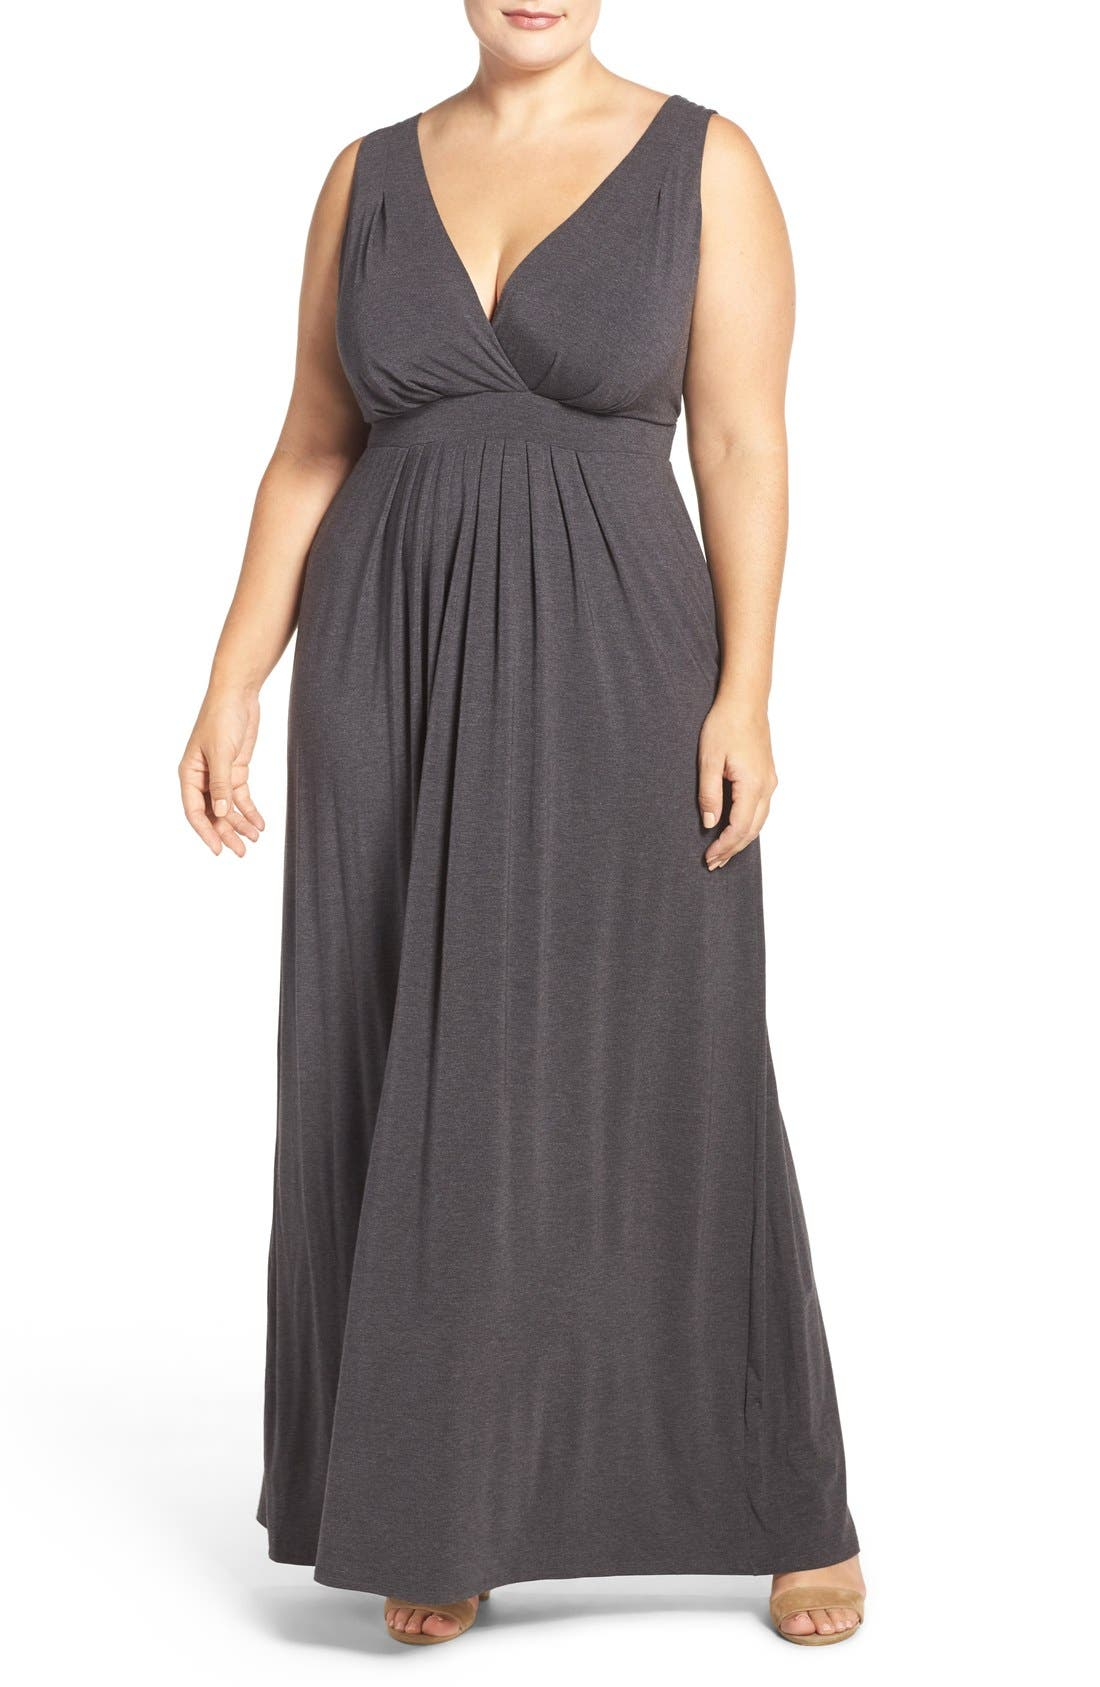 Chloe Empire Waist Maxi Dress,                             Main thumbnail 7, color,